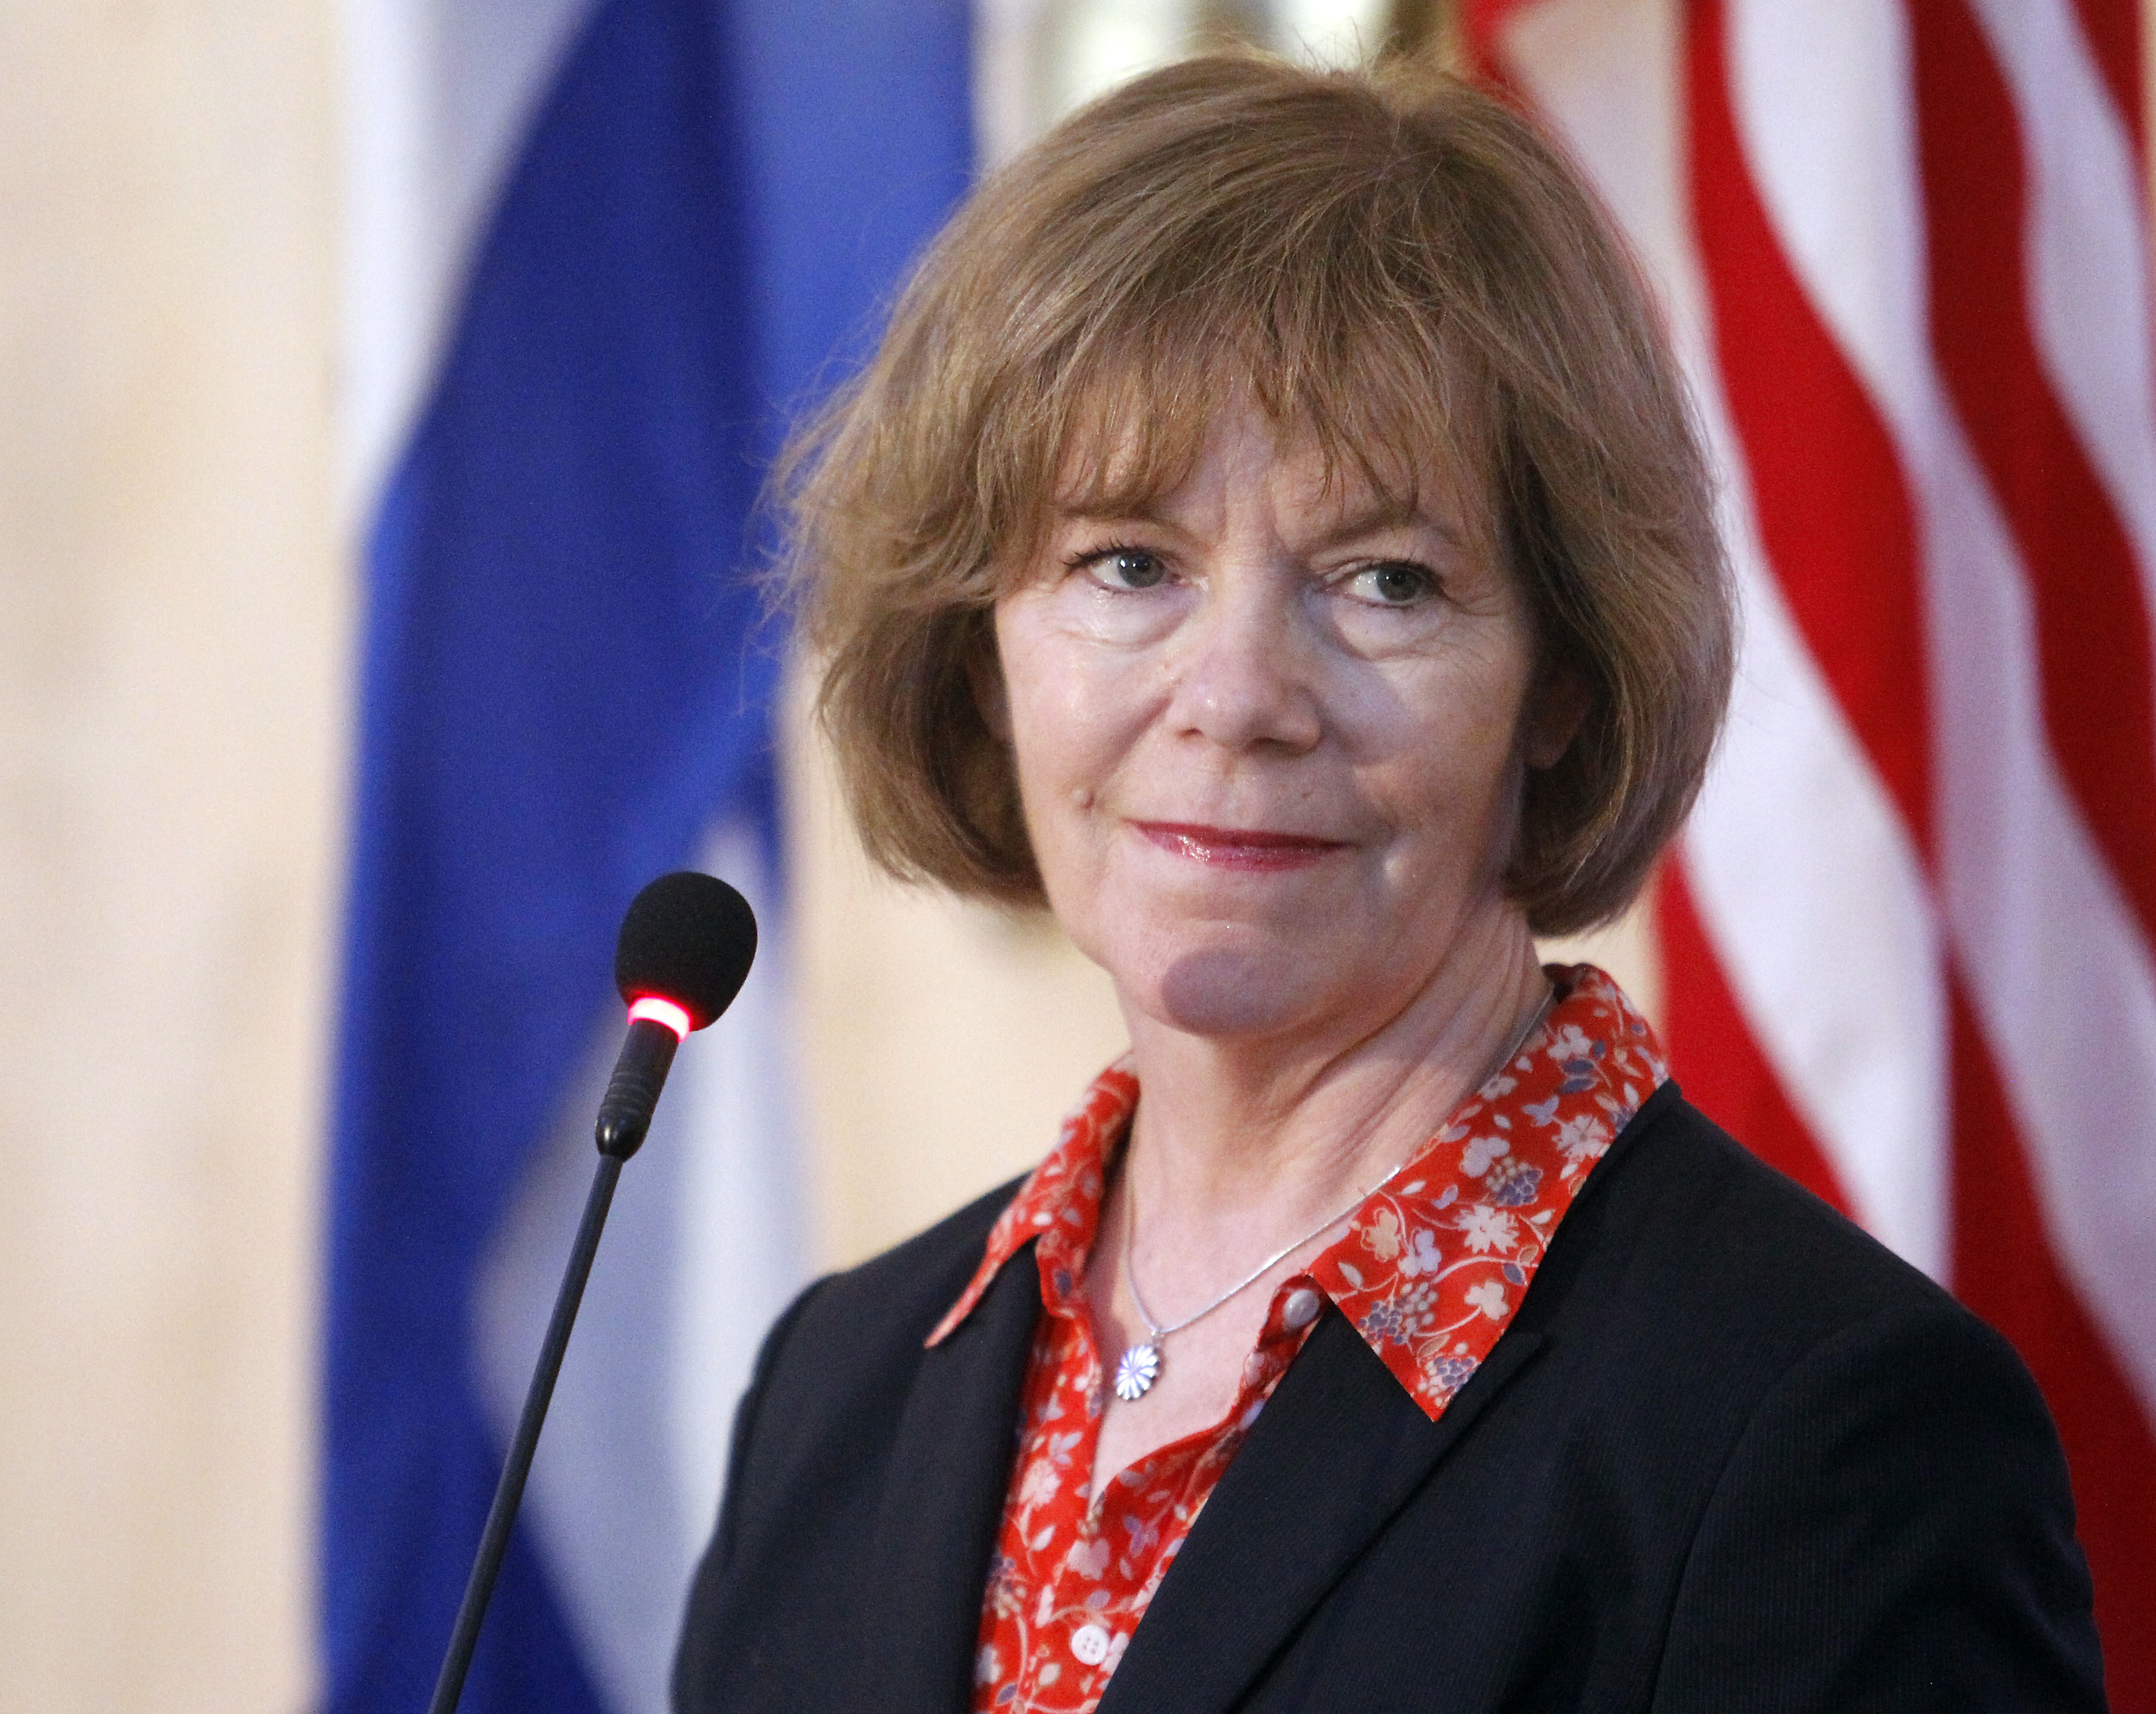 Tina Smith, Lieutenant Governor of Minnesota, looks on during a press conference as part of her official visit on June 22, 2017 to Havanna, Cuba.